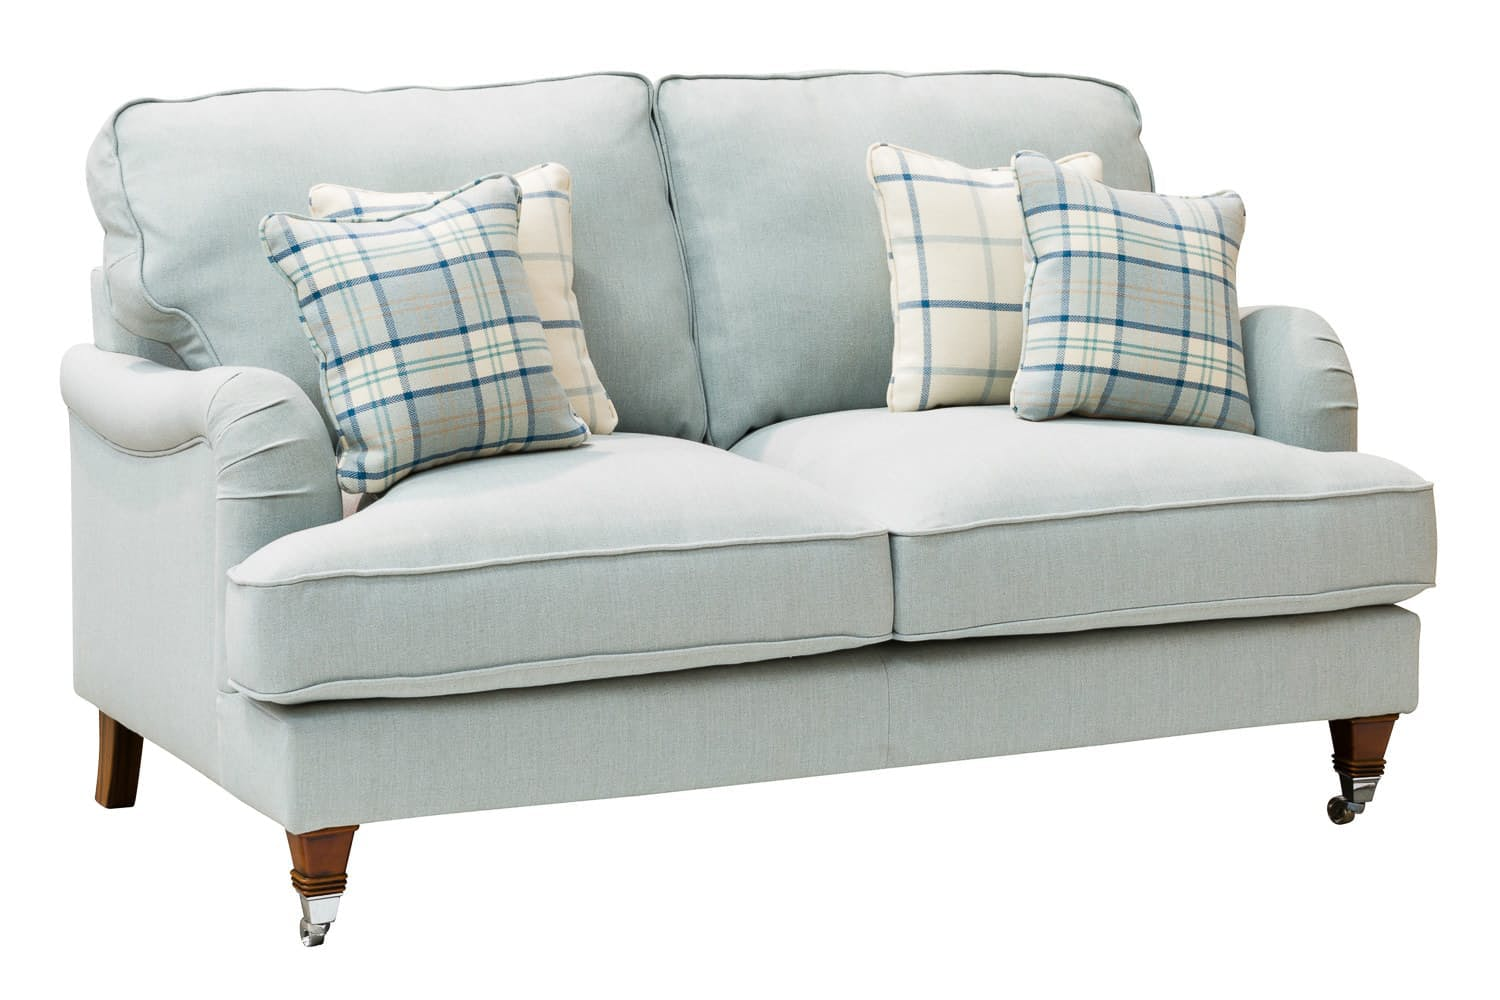 Helvick 2 Seater Sofa 16 Fabric Options